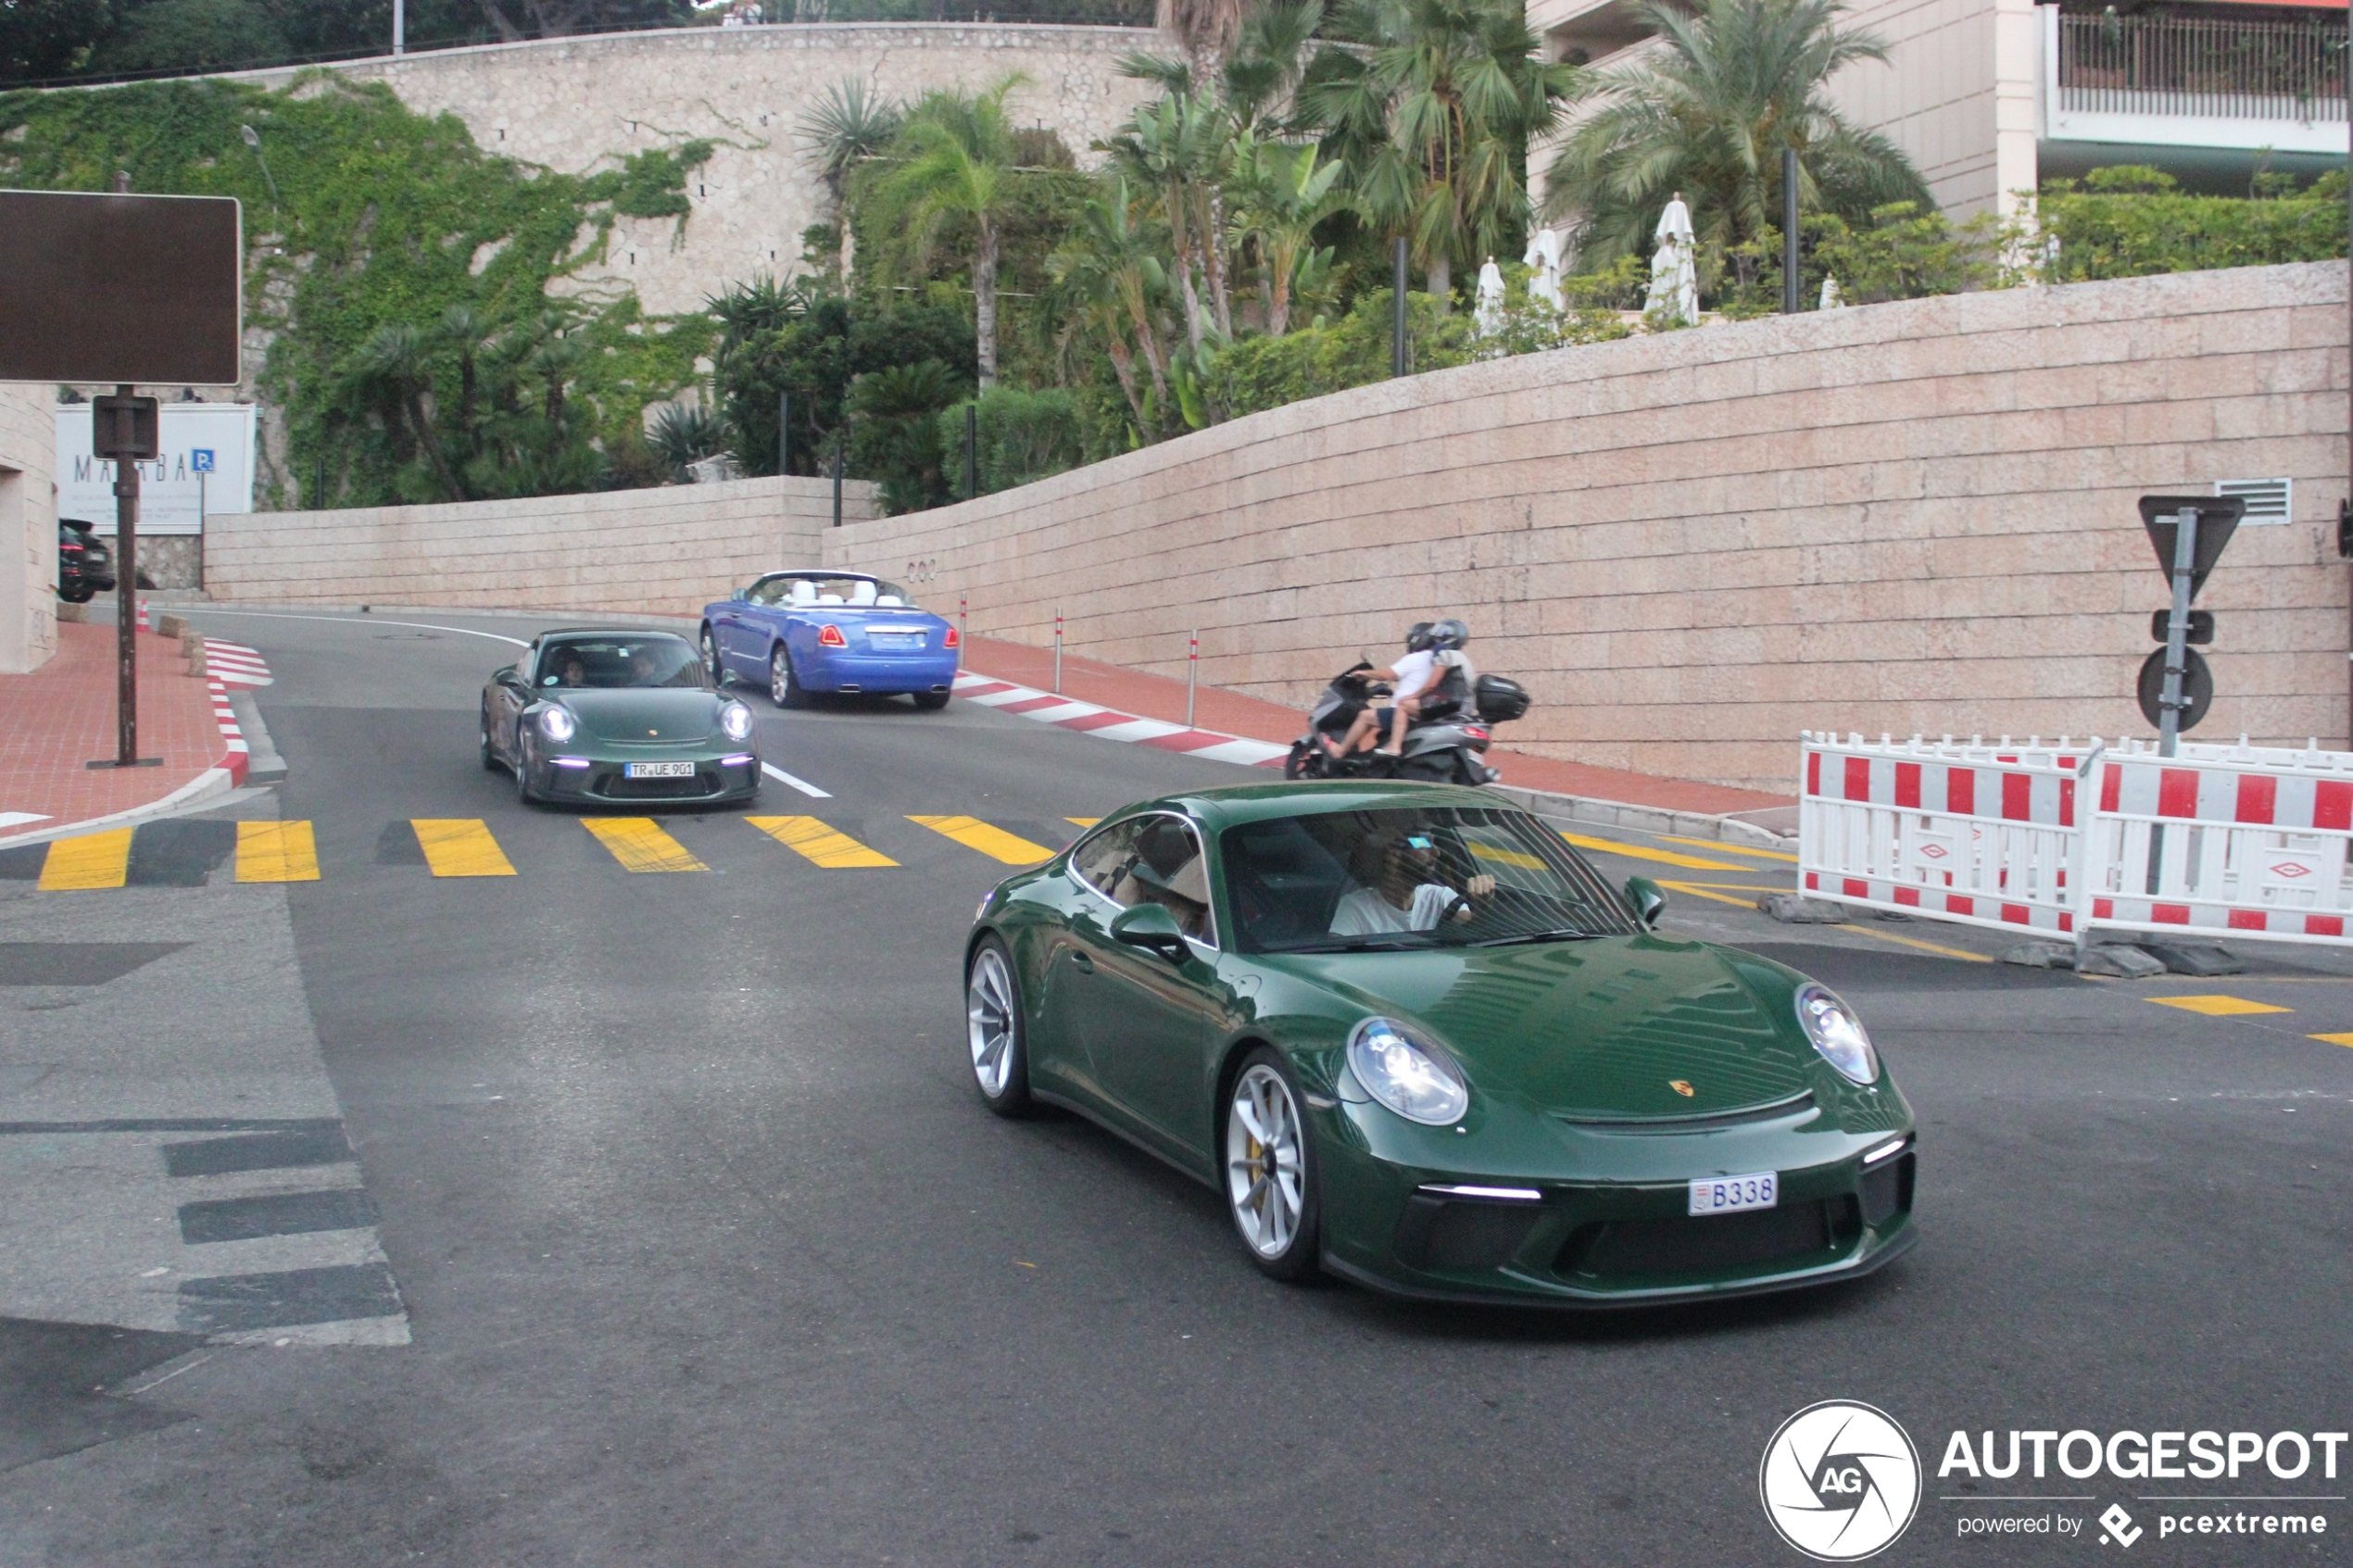 Irish Green Porsche duo ravot door Monaco